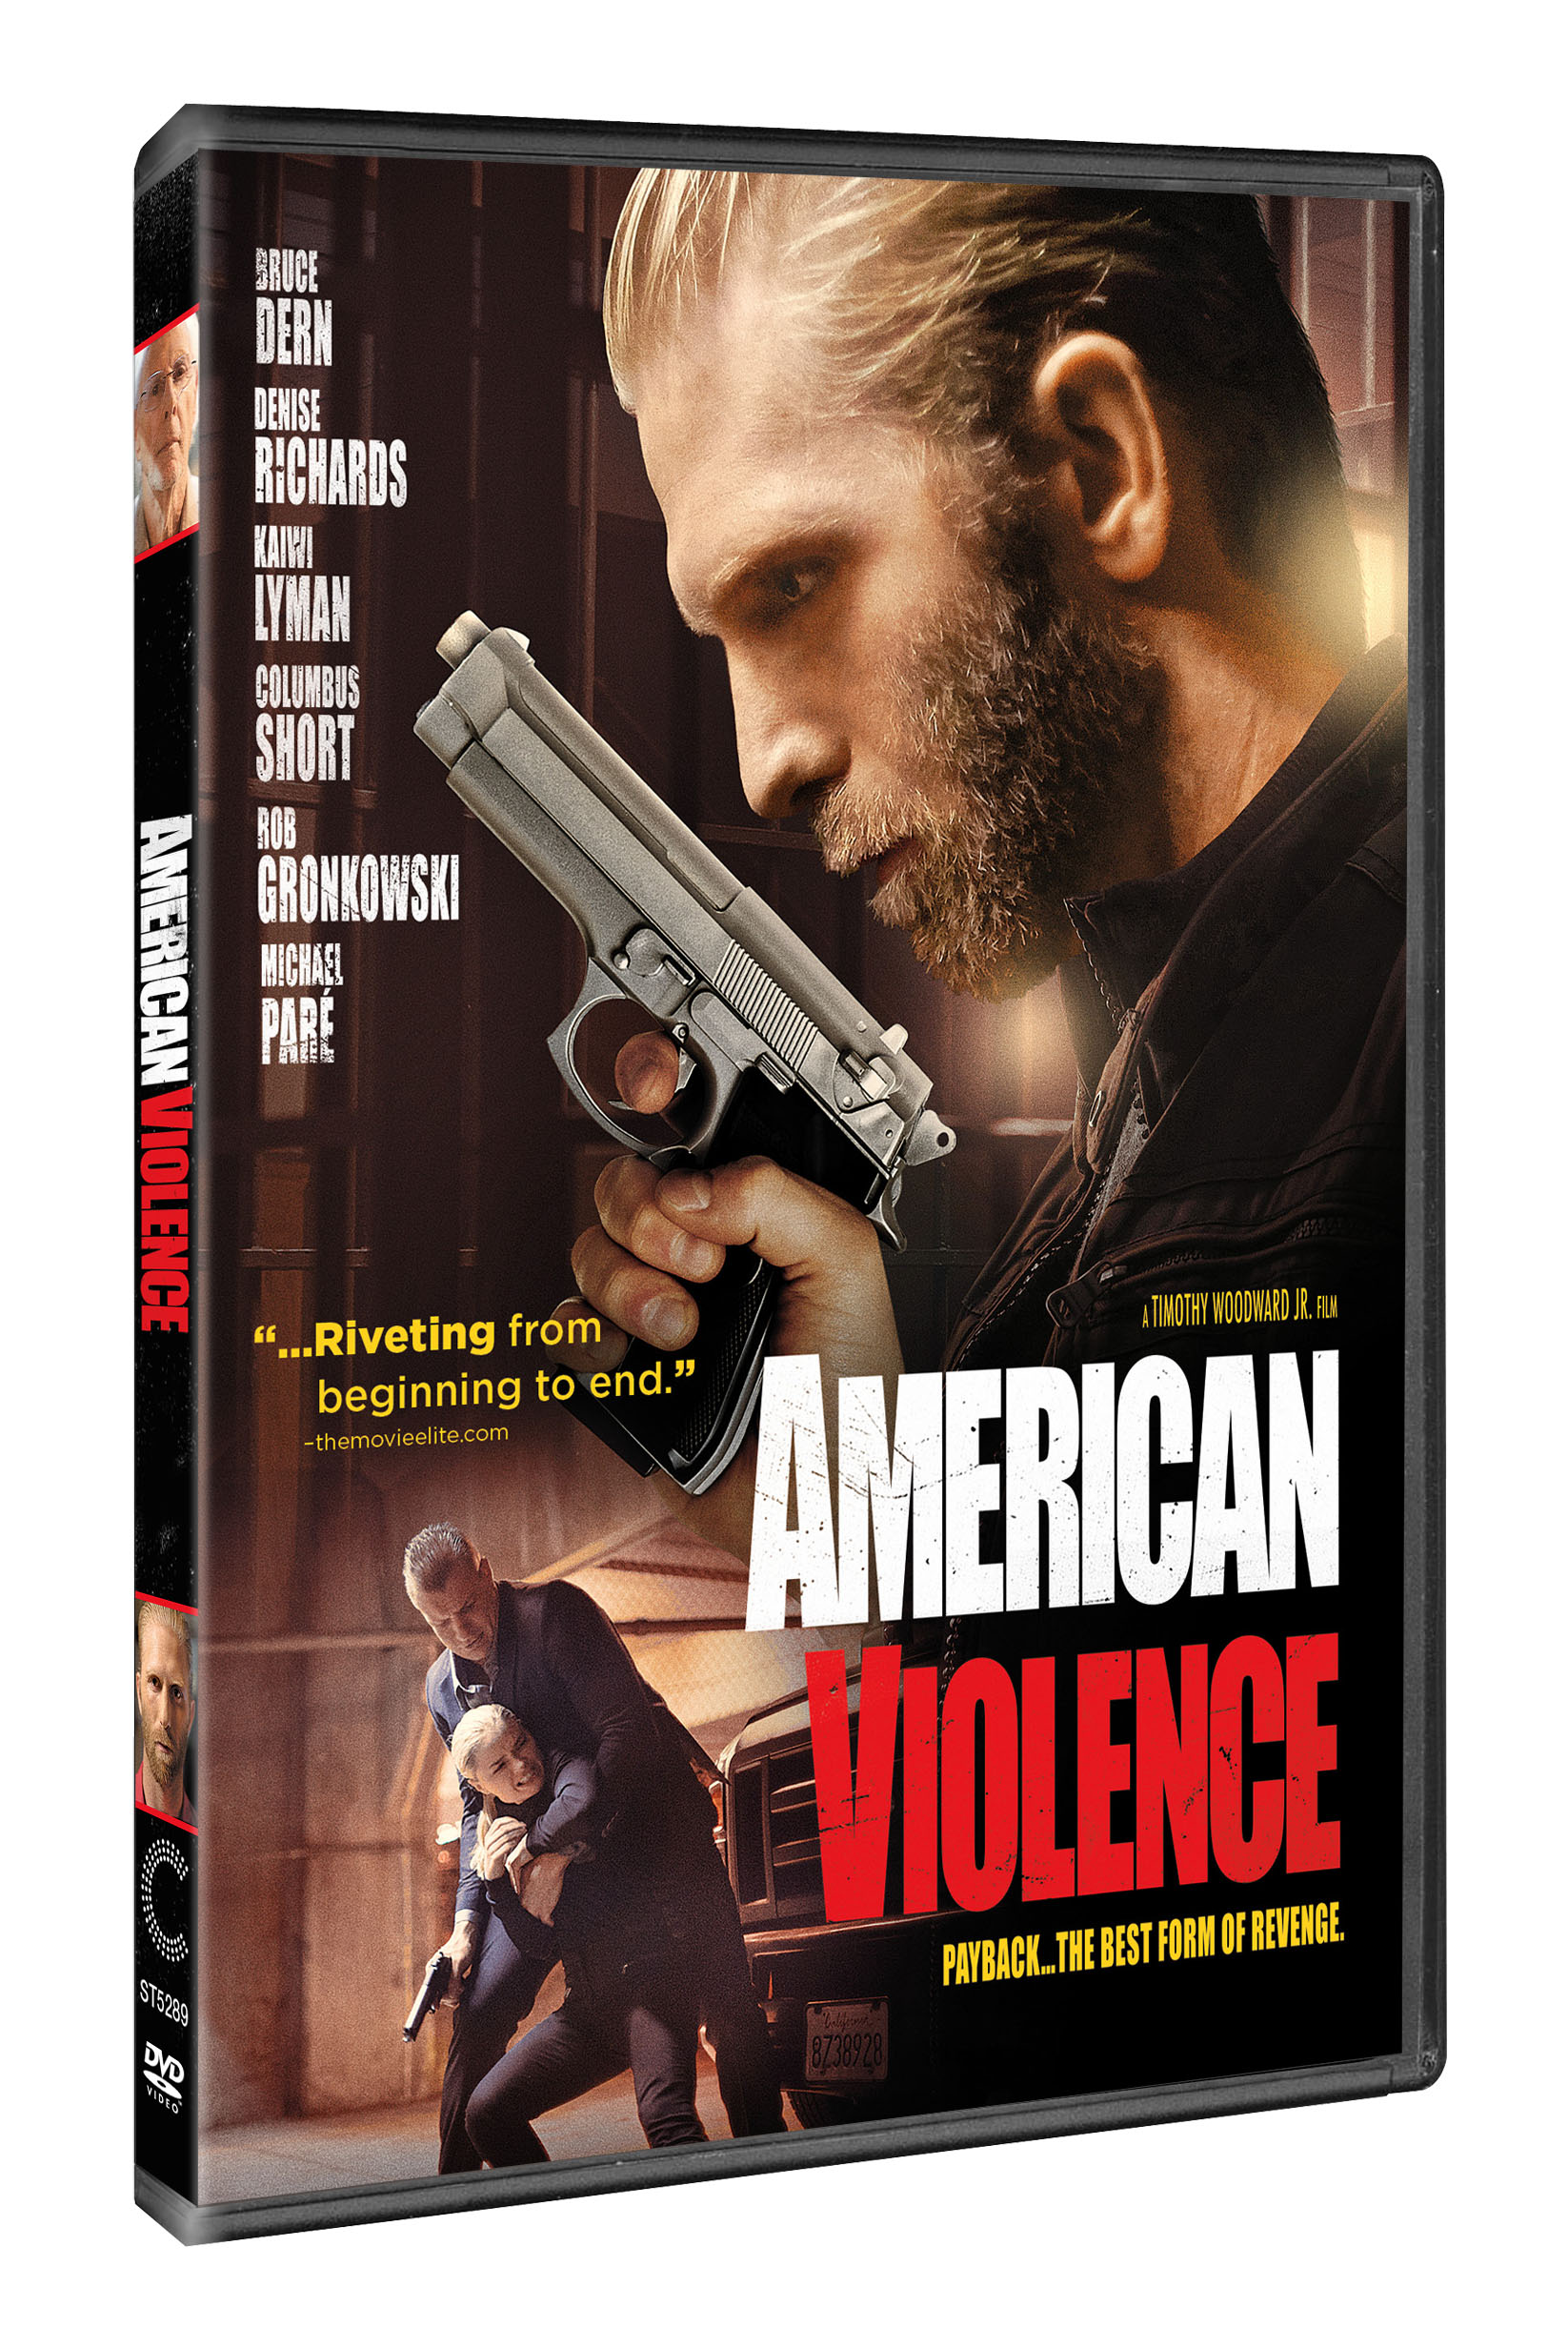 violence in america Why is there so much violence in america these days i get that question a lot now every time there is a murder/suicide relating to a domestic violence report, someone asks, why is there so much violence in america.